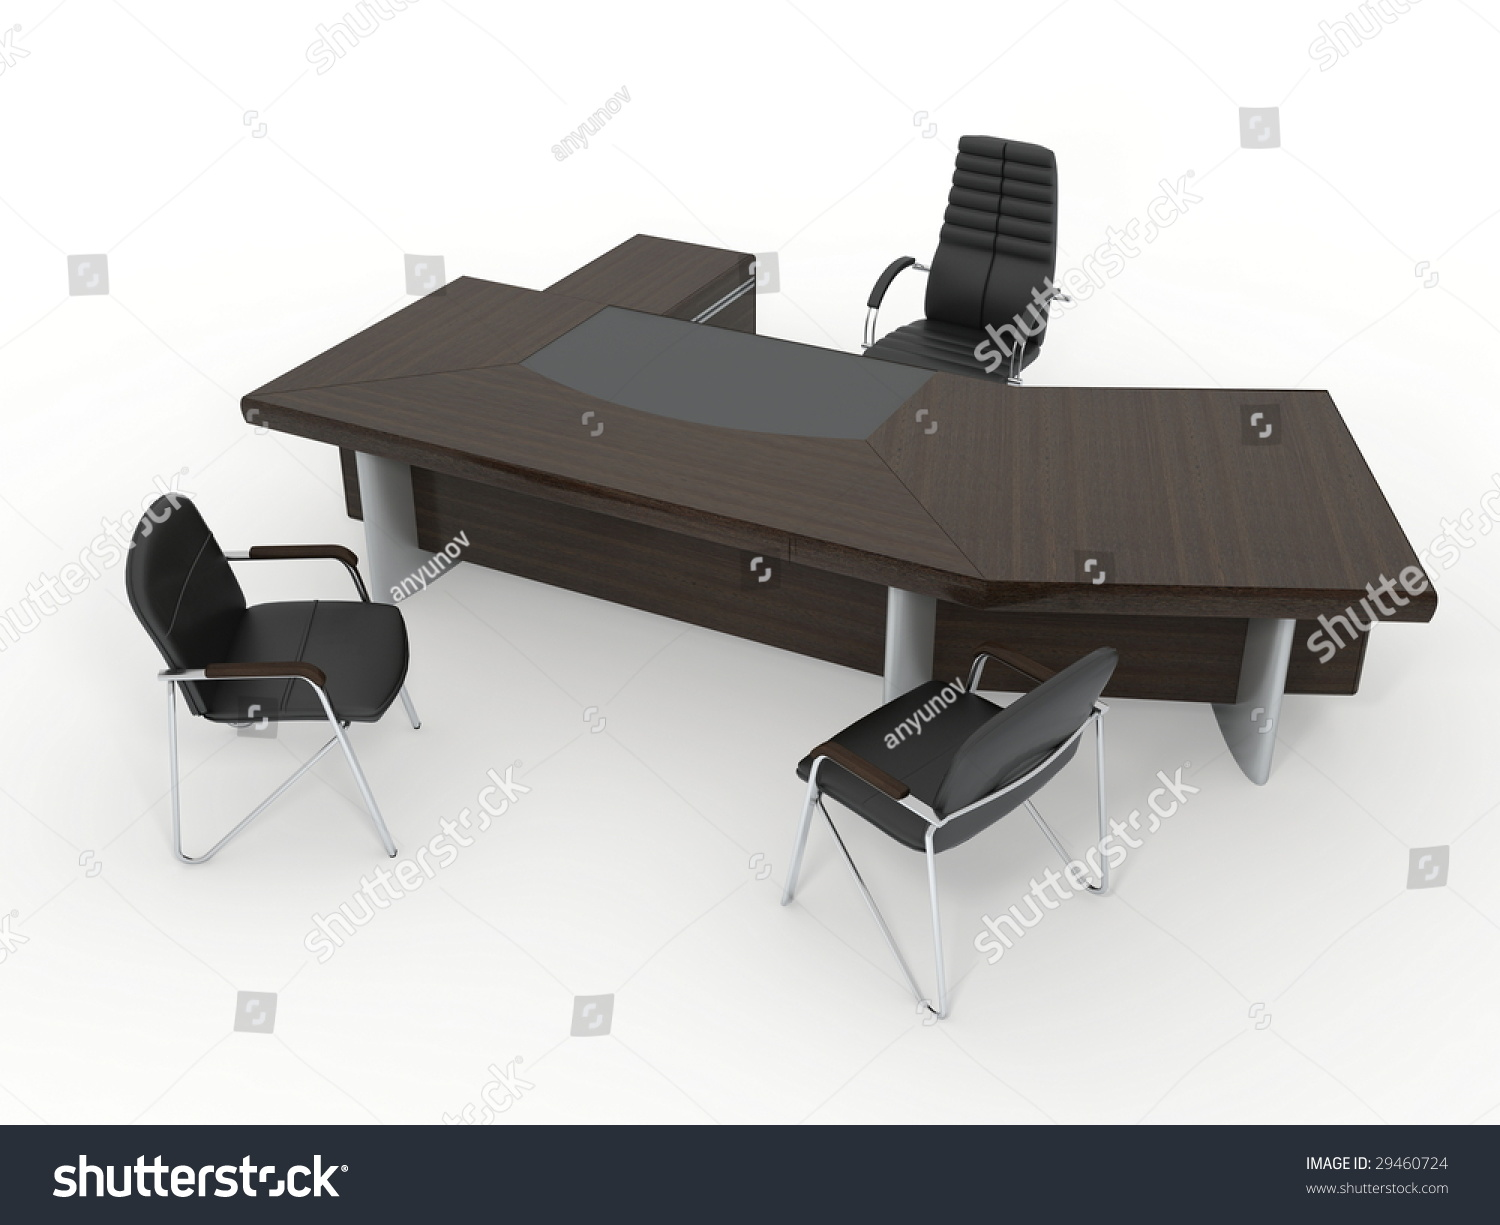 31 Lastest Office Furniture White Background